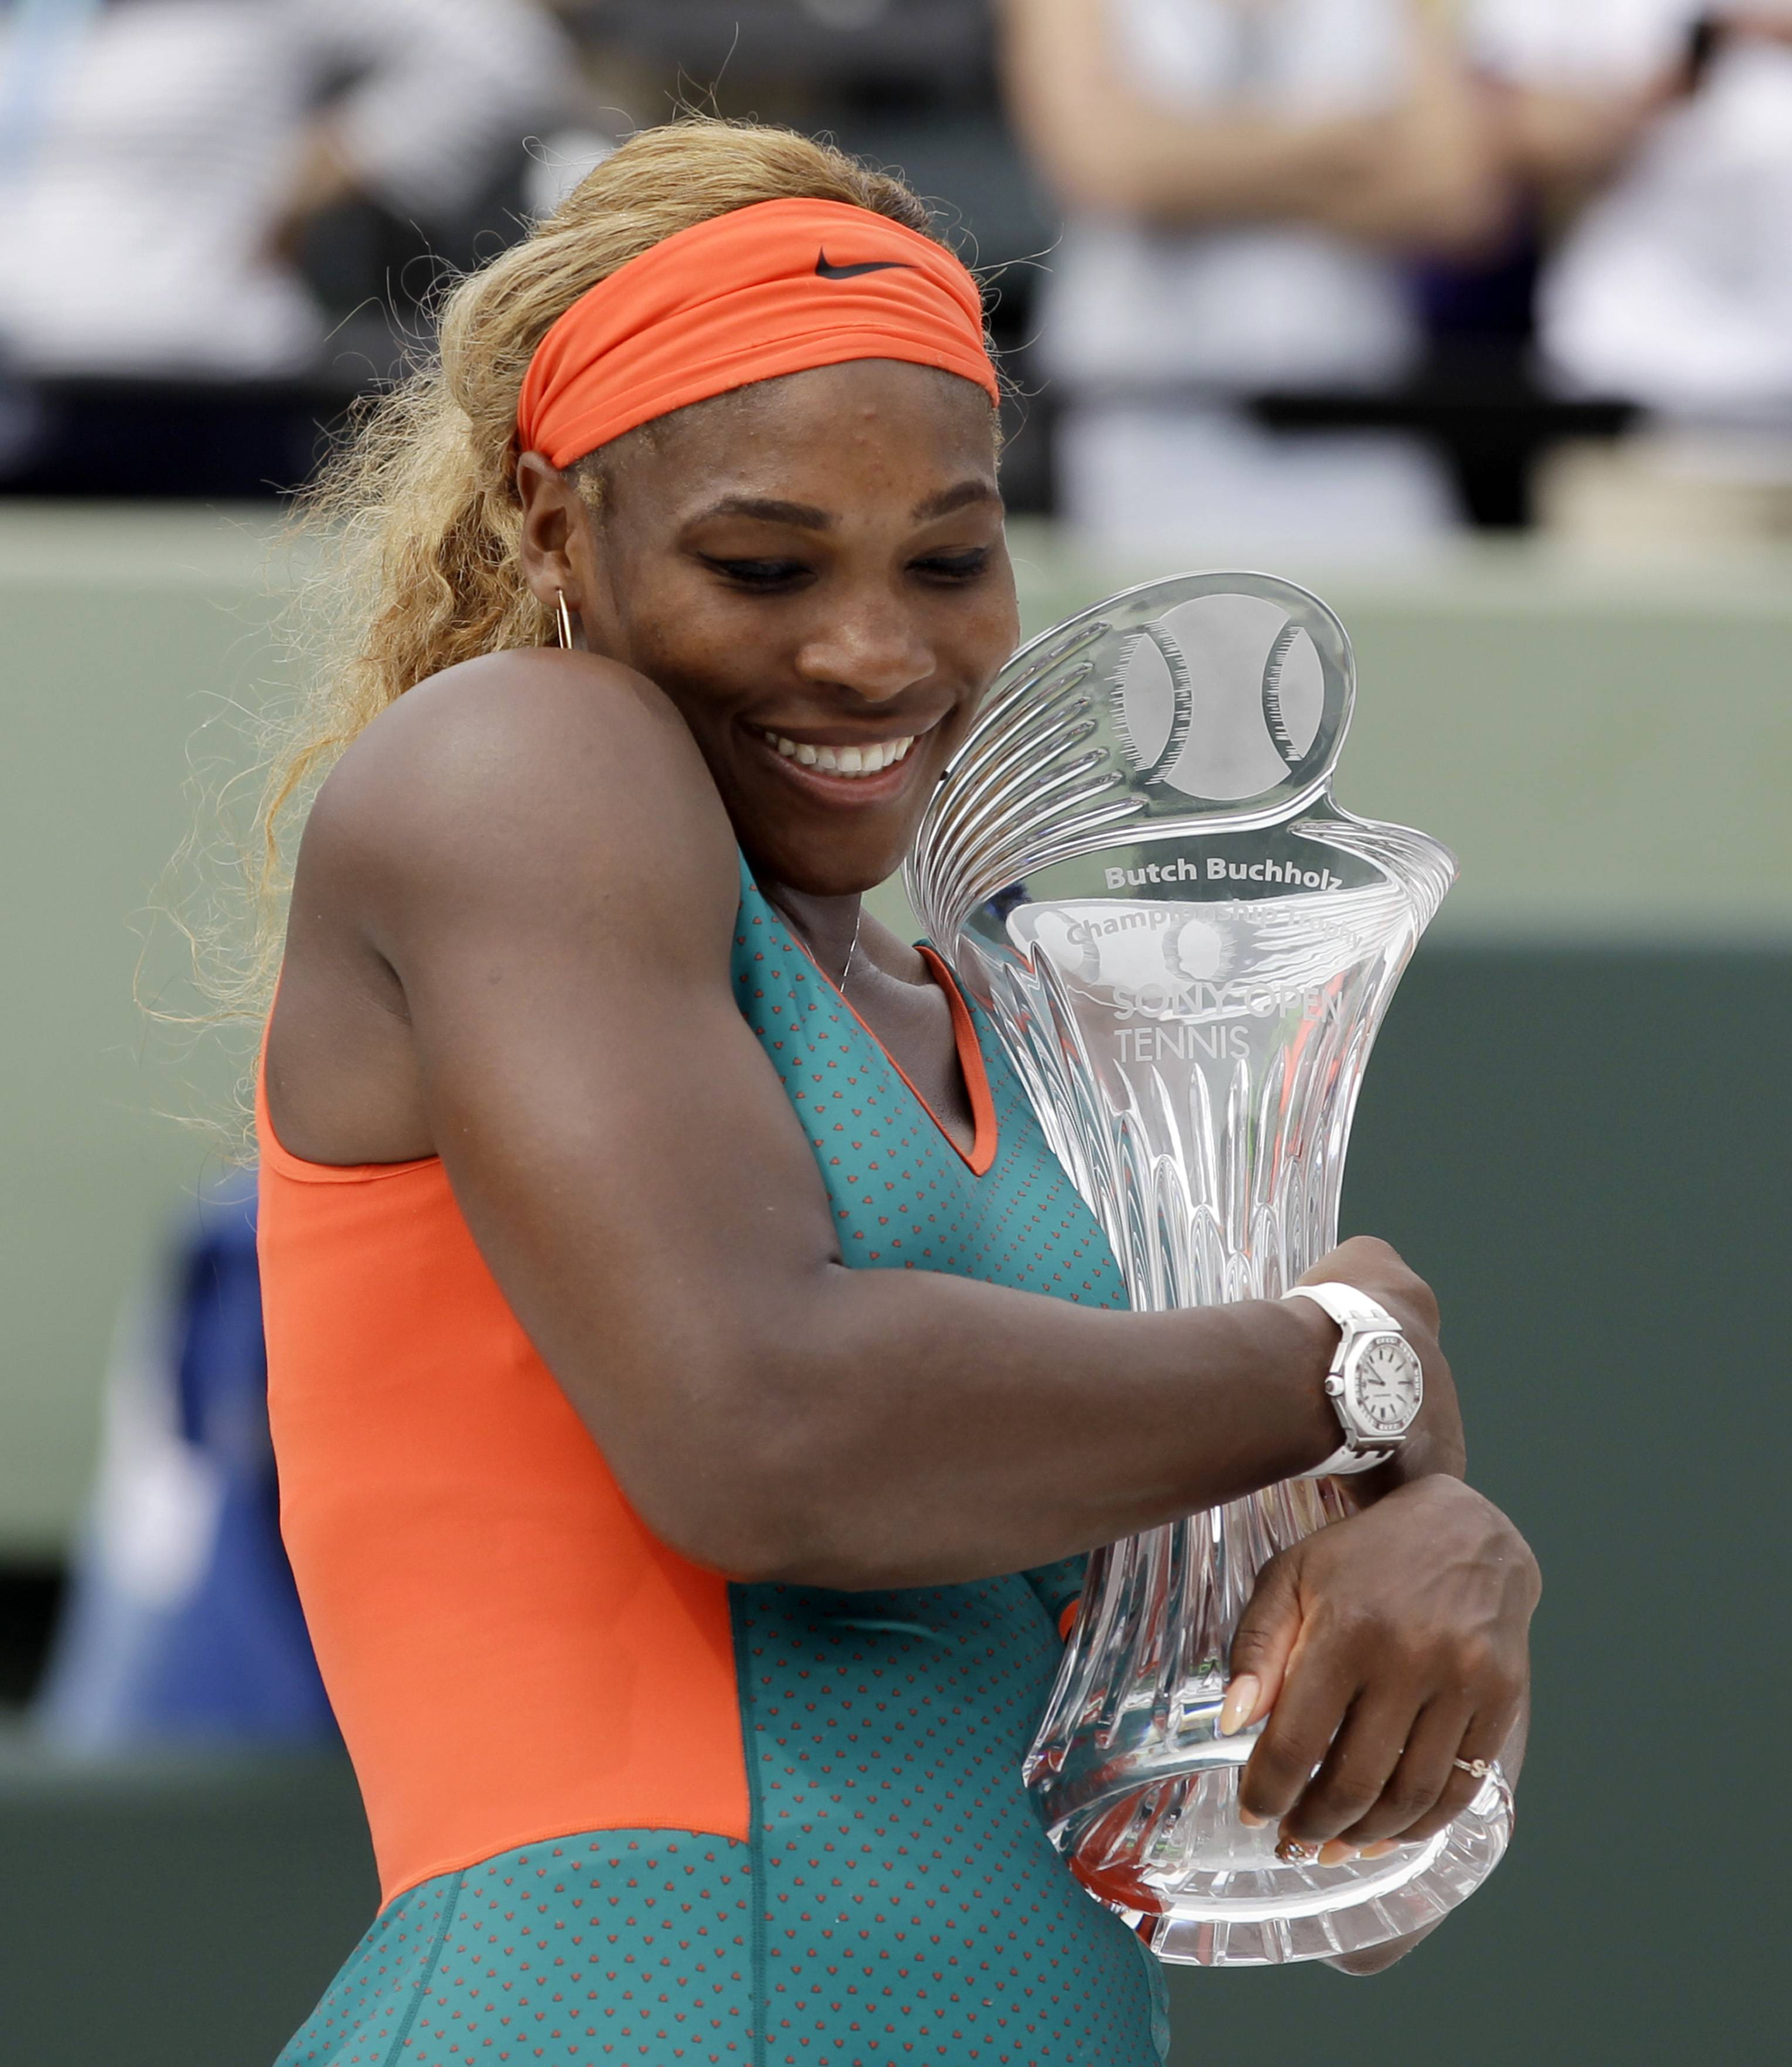 Serena Williams, of the United States, hugs the the trophy as she poses for photos after defeating Li Na, of China, in the women's final 7-5, 6-1 at the Sony Open Tennis tournament in Key Biscayne, Fla., Saturday.